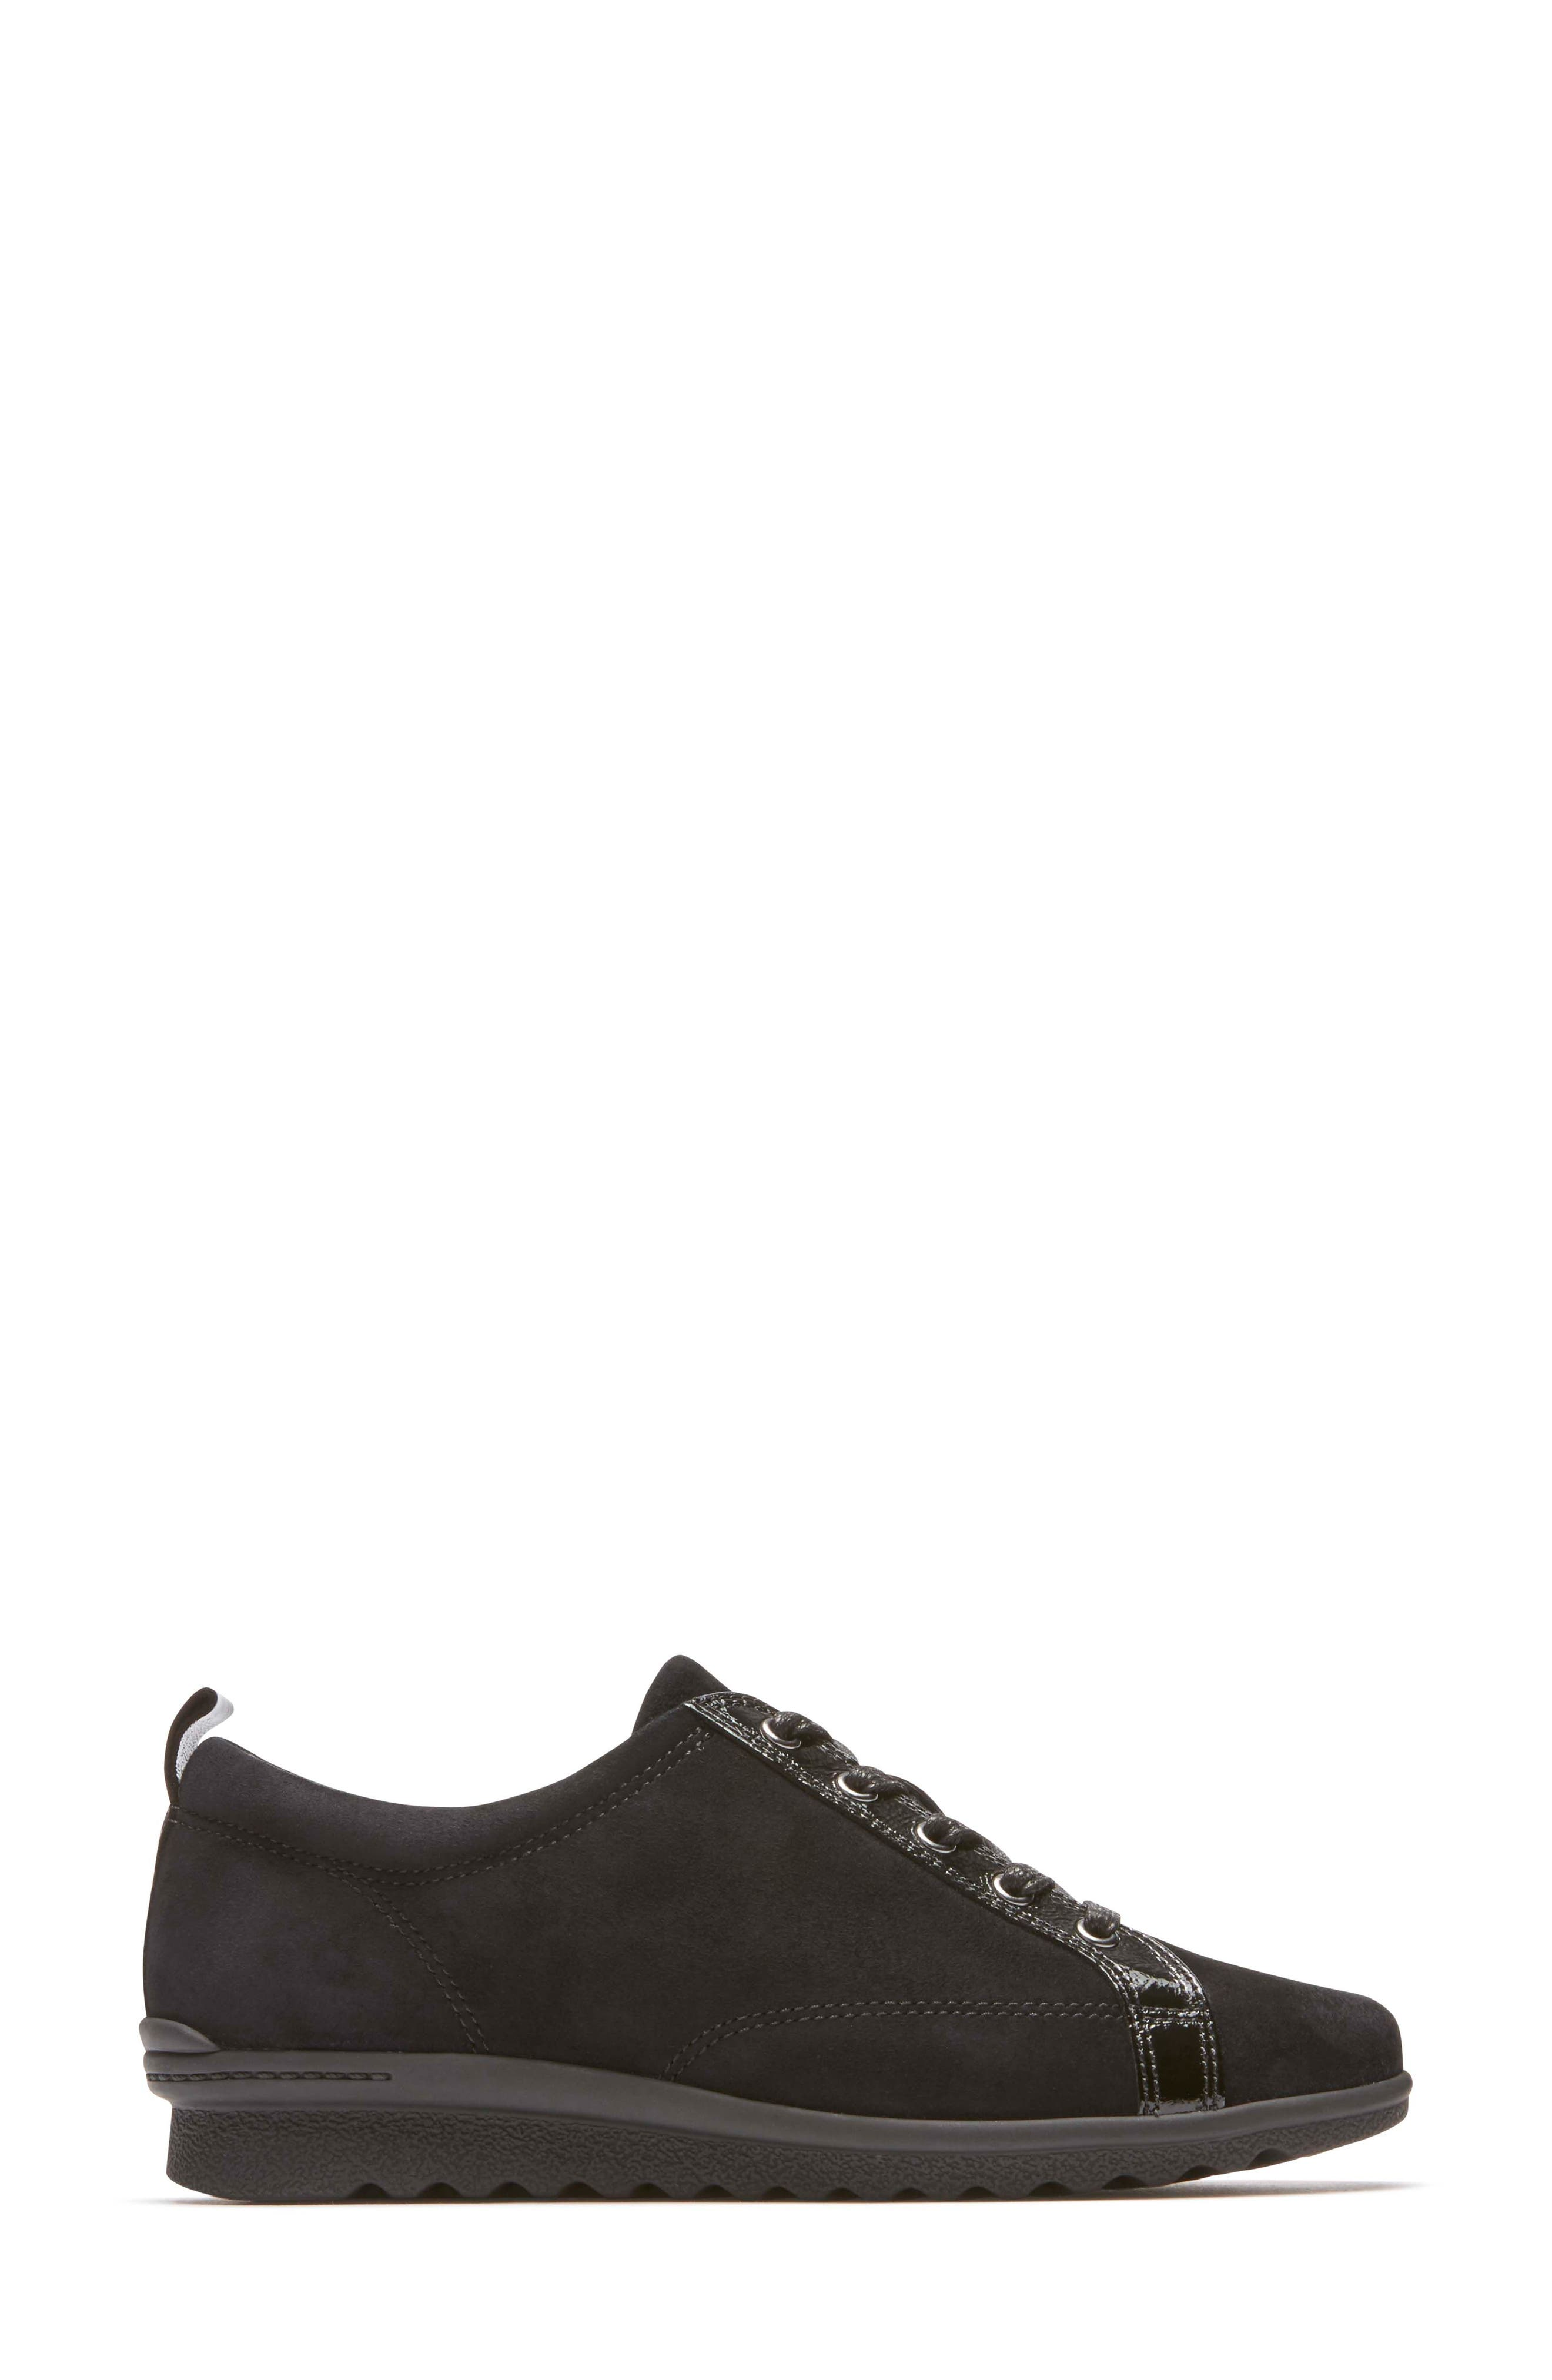 Chenole Wedge Sneaker,                             Alternate thumbnail 3, color,                             BLACK SUEDE